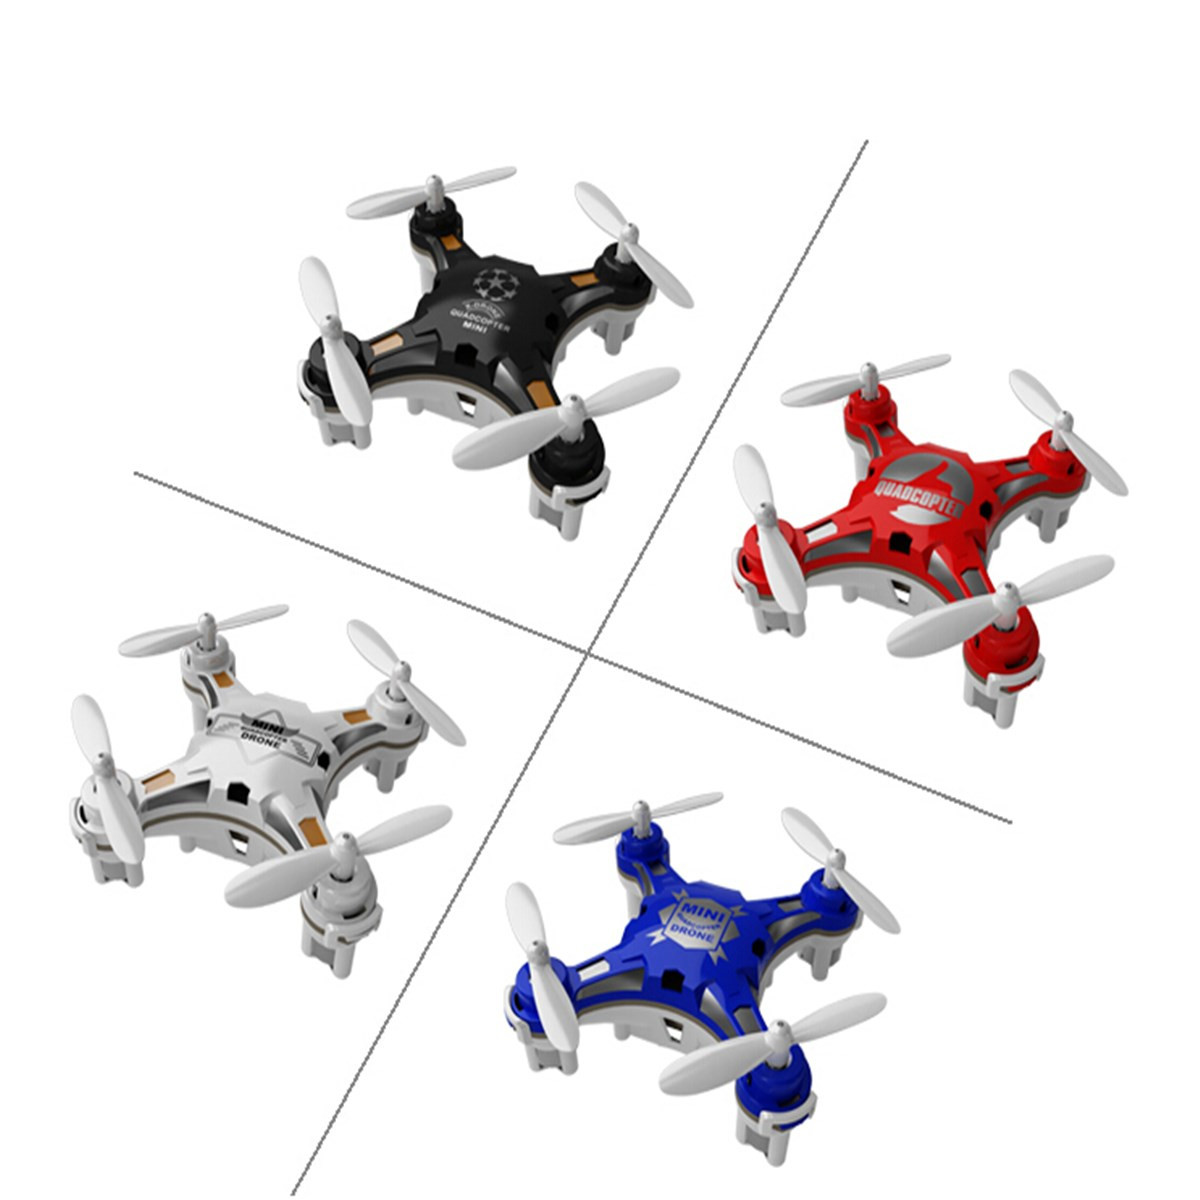 Гаджет  The Most Popular FQ777-124 Pocket Drone 4CH 6Axis Gyro Quadcopter With Switchable Controller RTF Remote Control Helicopter Toys None Игрушки и Хобби